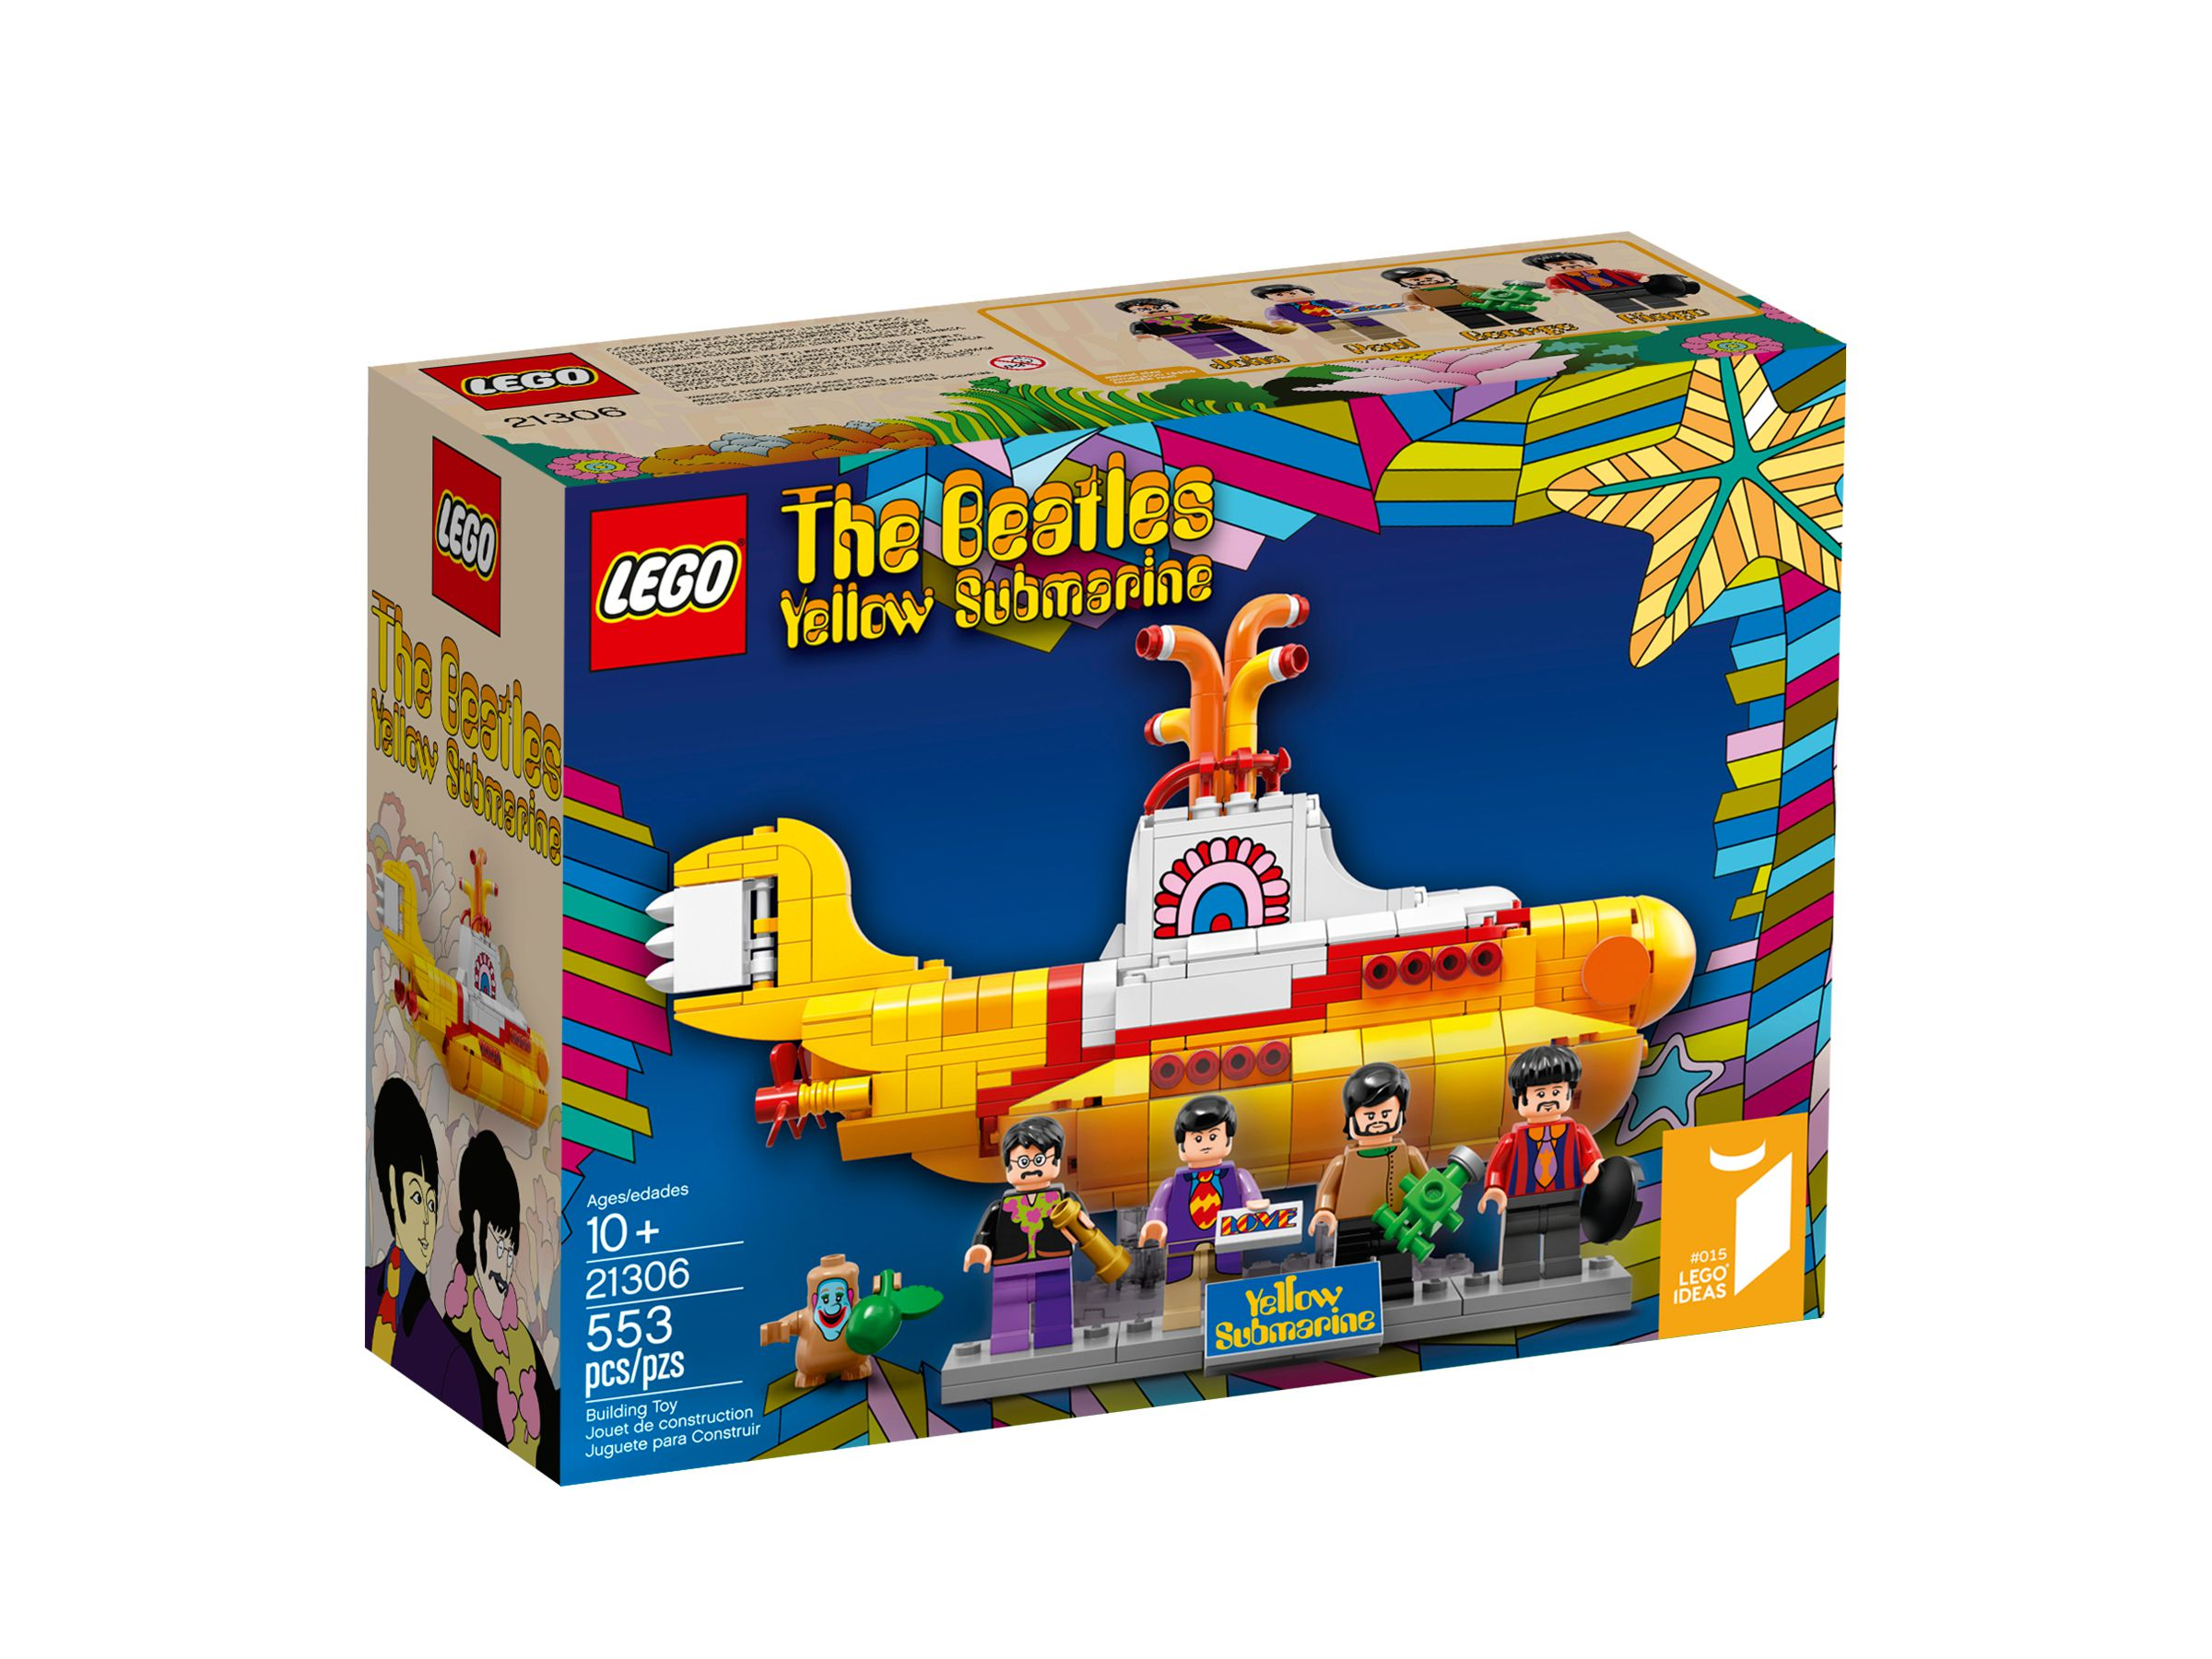 LEGO Ideas 21306 Yellow Submarine LEGO_21306_alt1.jpg